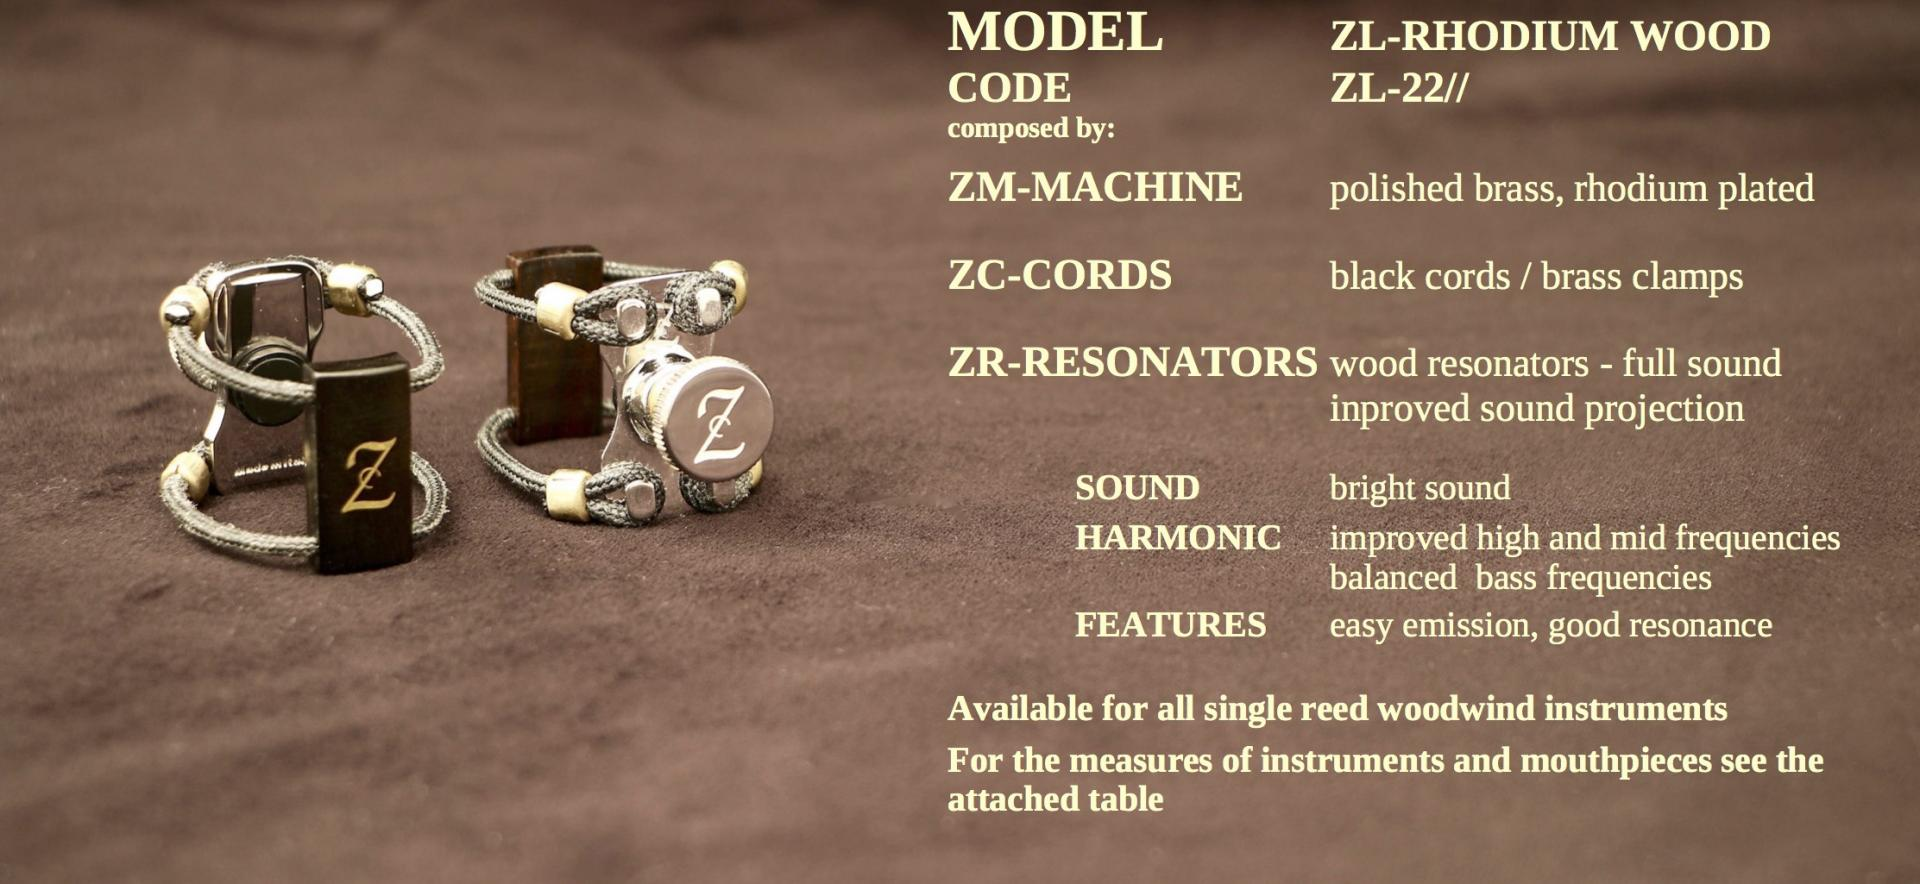 ZAC LIGATURE MODEL: ZL-RHODIUM WOOD